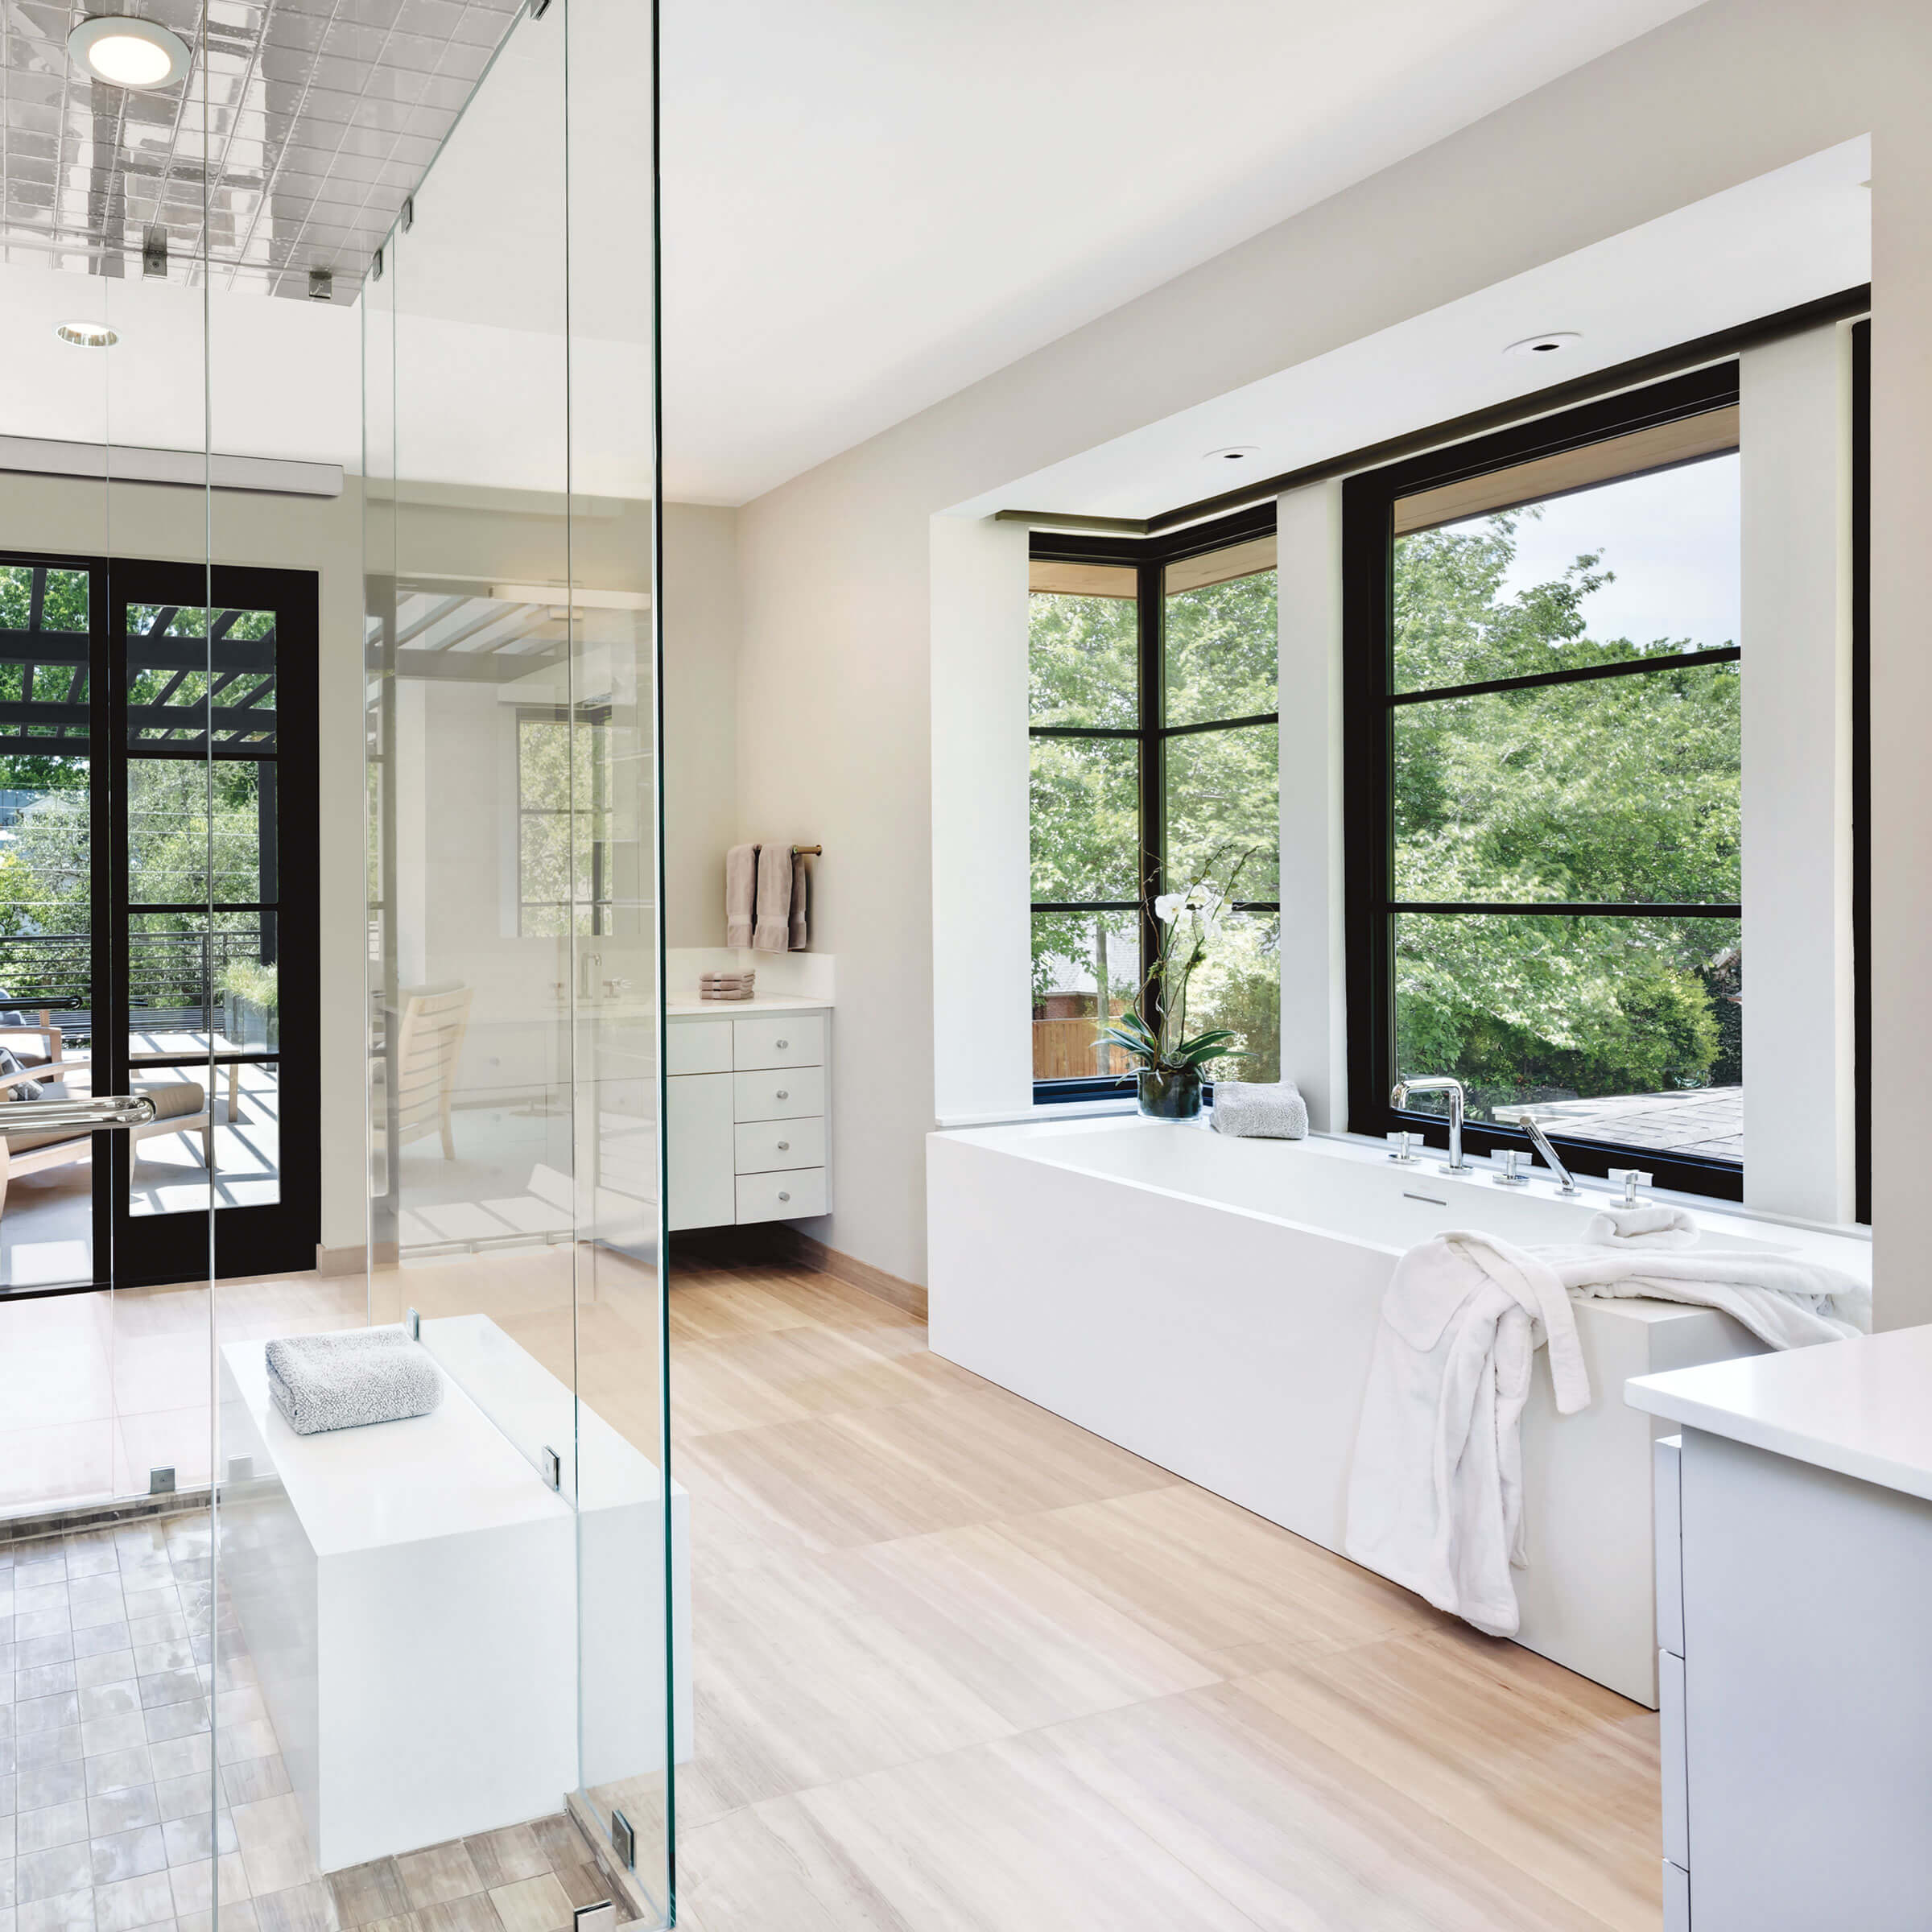 Bathroom With Signature Ultimate Casement Narrow Frame Windows